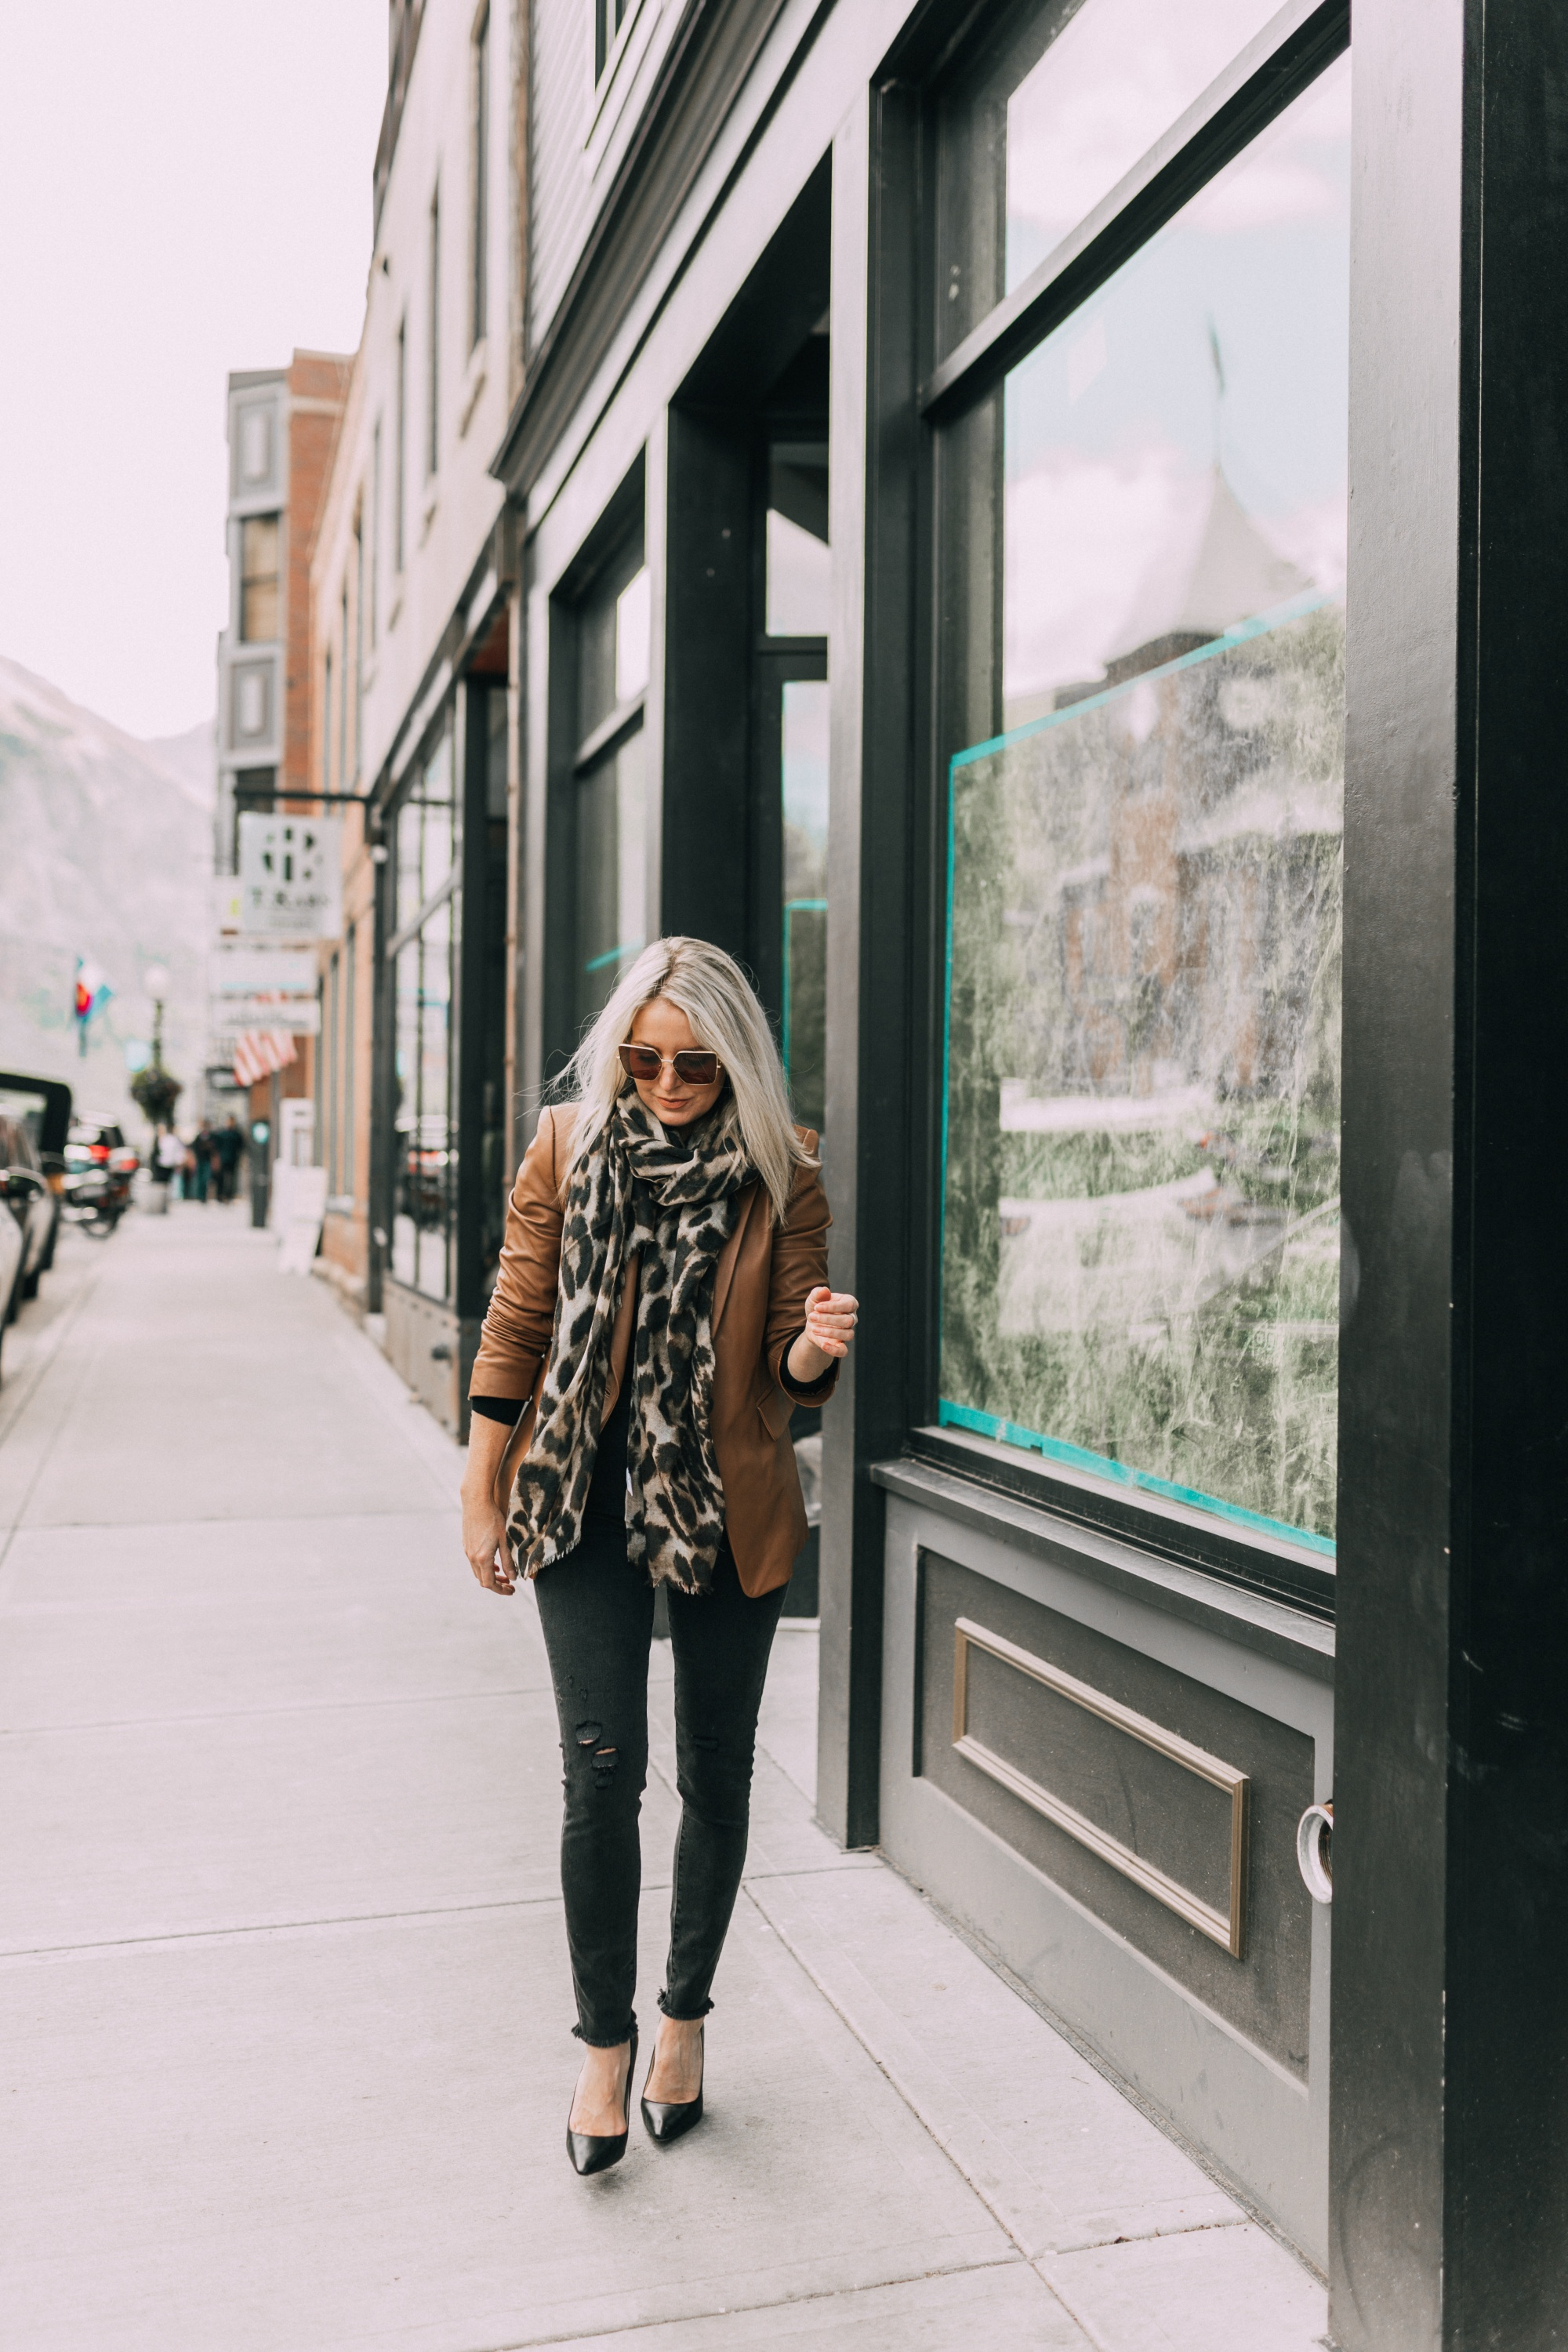 Brown and black outfit, fashion blogger Erin Busbee of BusbeeStyle.com wearing a brown leather blazer by Kobi Halperin, black distressed jeans by J Brand, black puff sleeve cashmere sweater by AQUA, gold Baublebar layered necklace, leopard print scarf, and black Jimmy Choo pumps in Telluride, Colorado